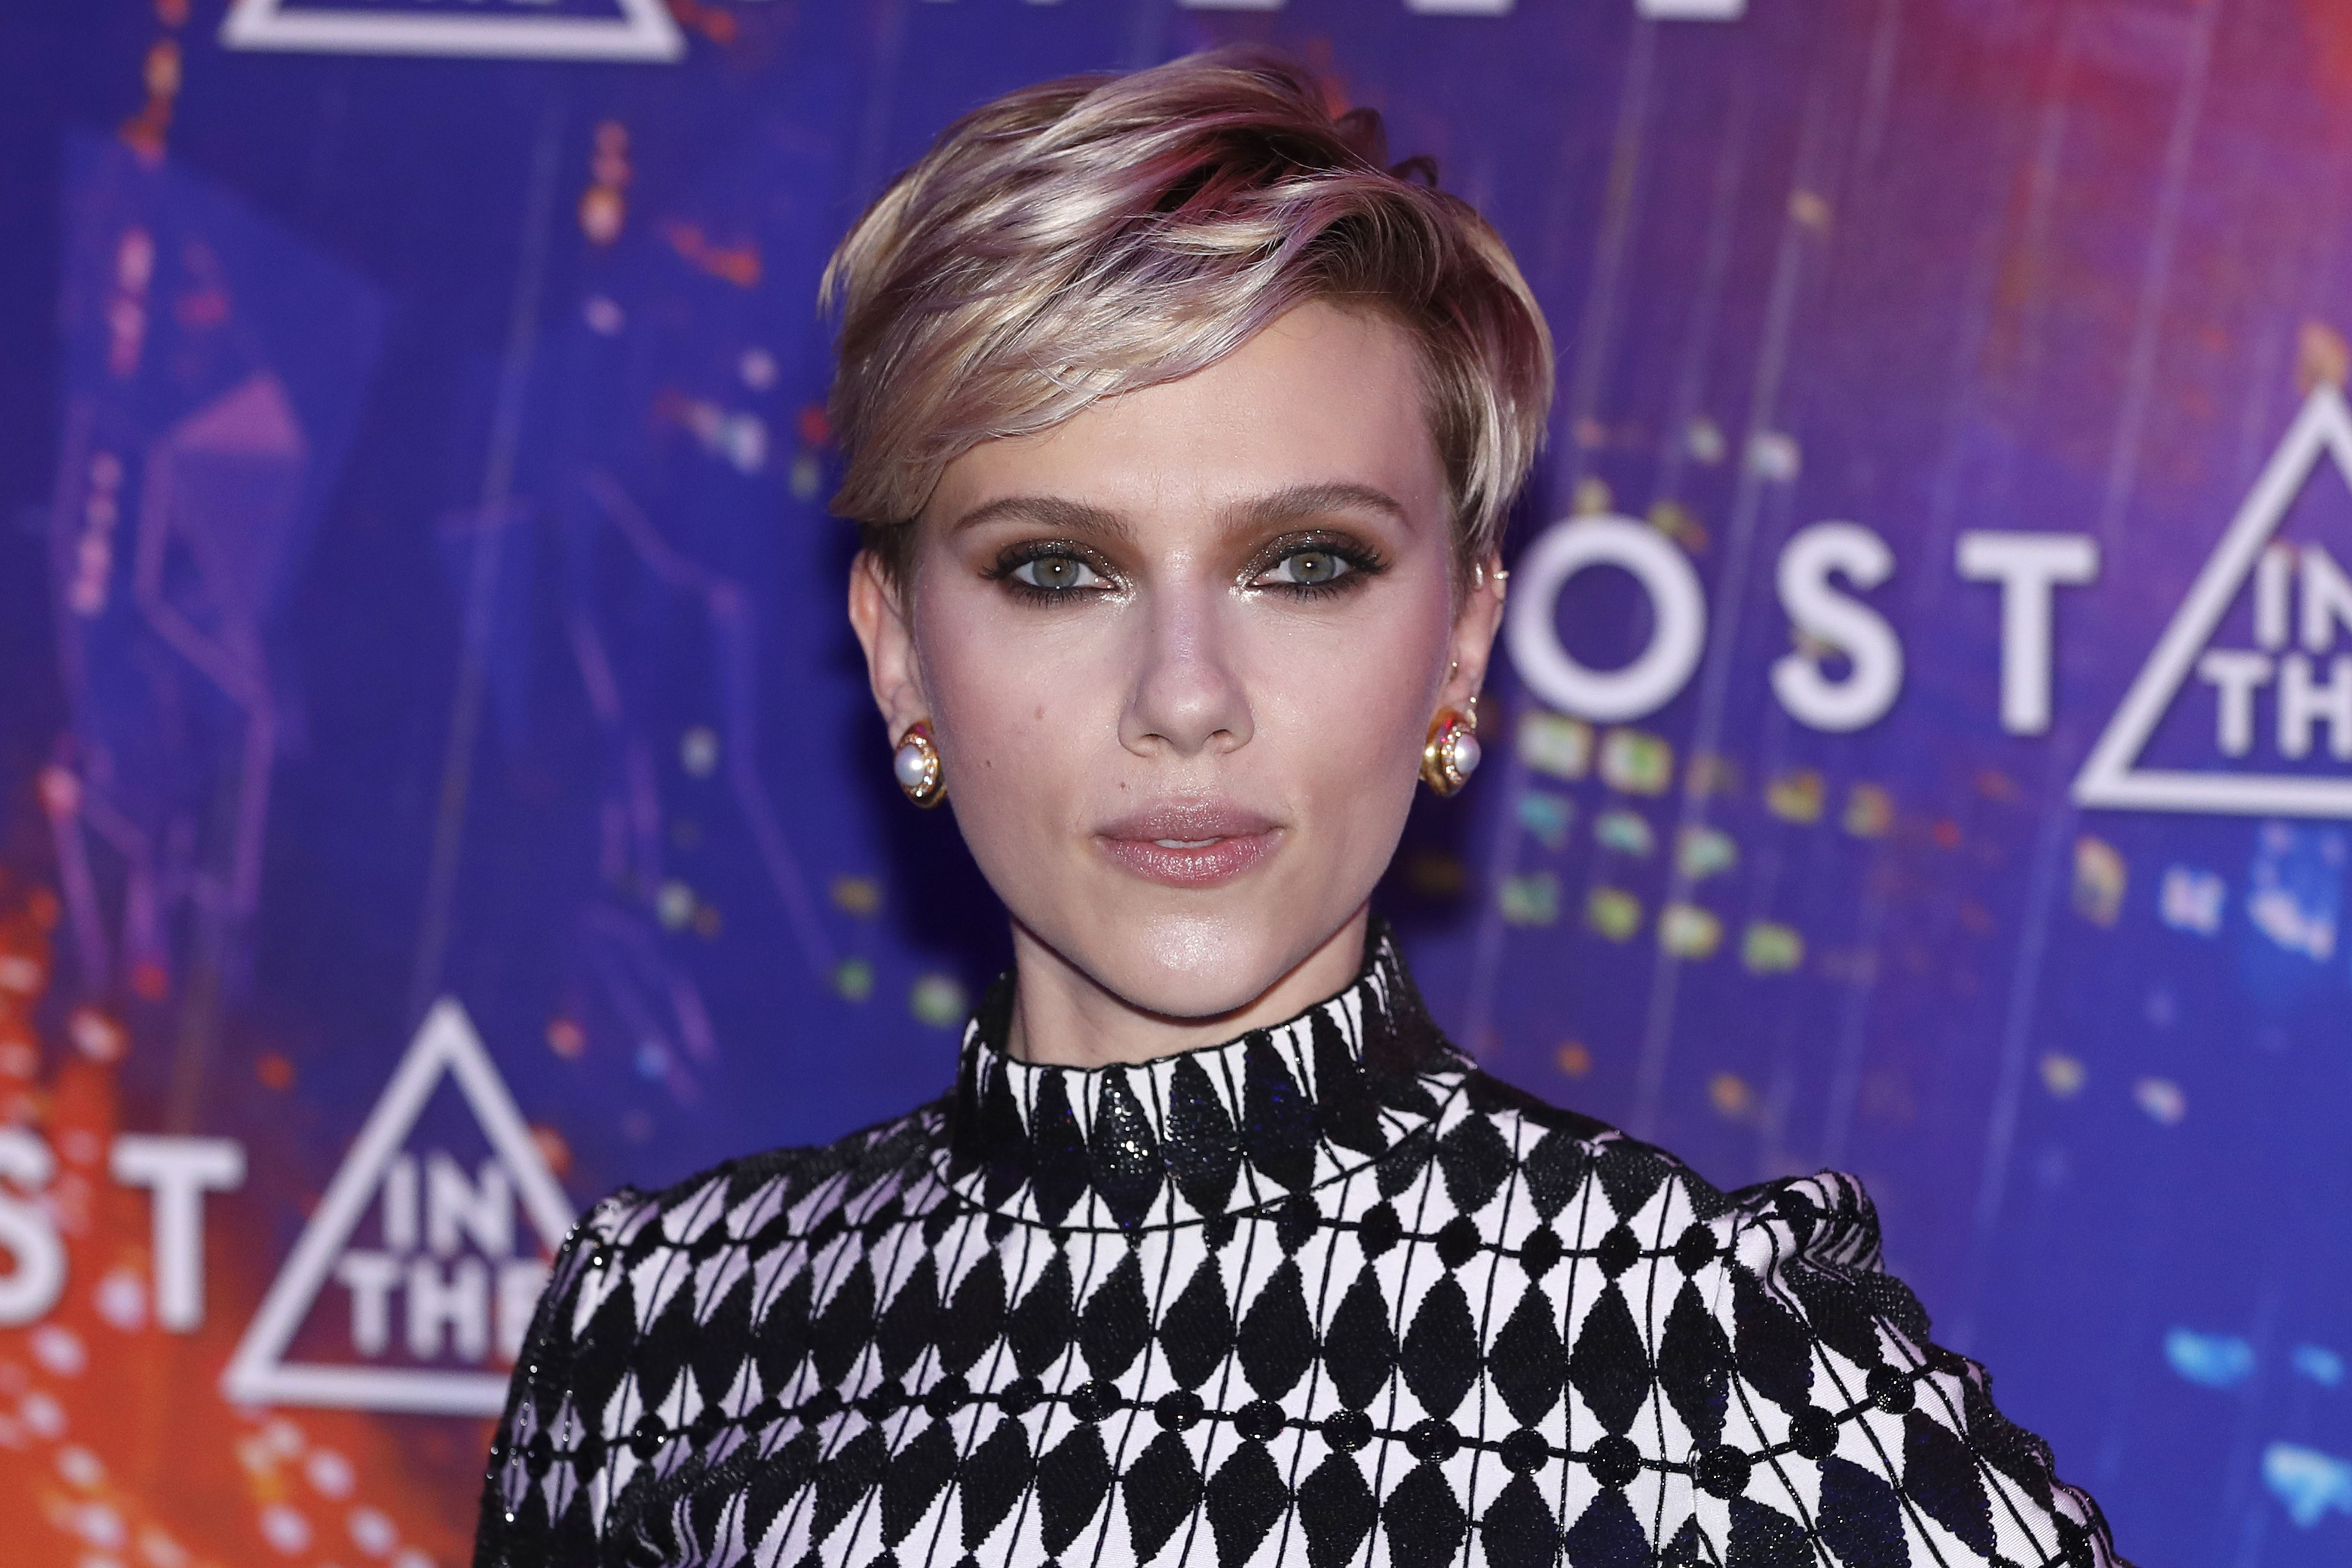 Scarlett Johansson Breastfeeding Grounded Her During Filming Time